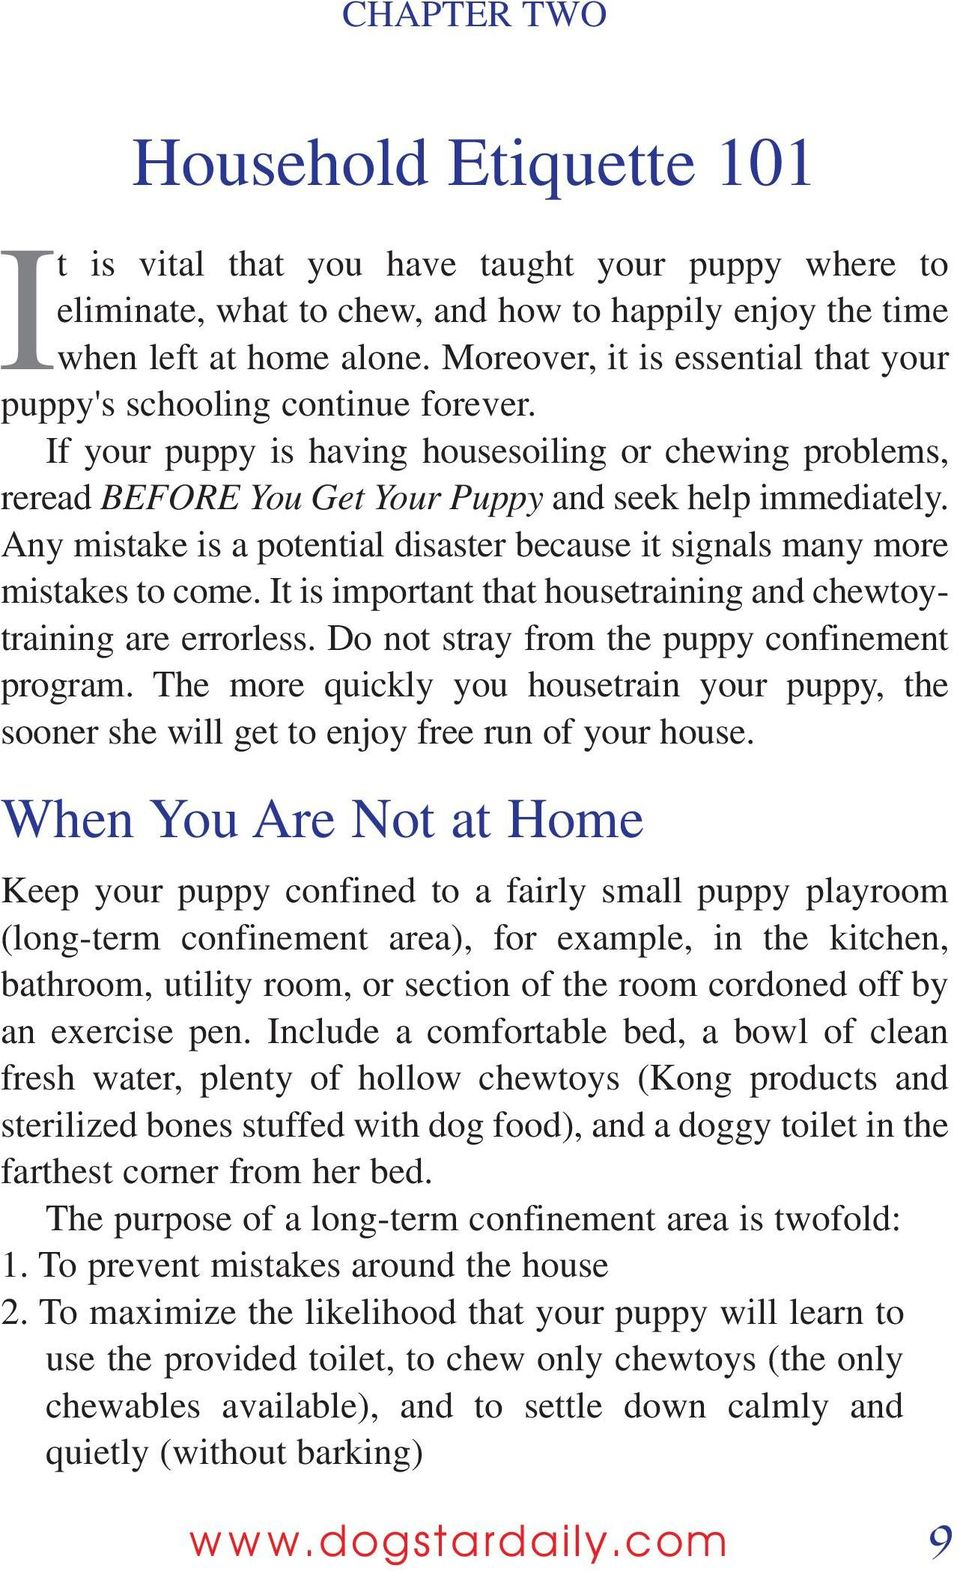 Any mistake is a potential disaster because it signals many more mistakes to come. It is important that housetraining and chewtoytraining are errorless.